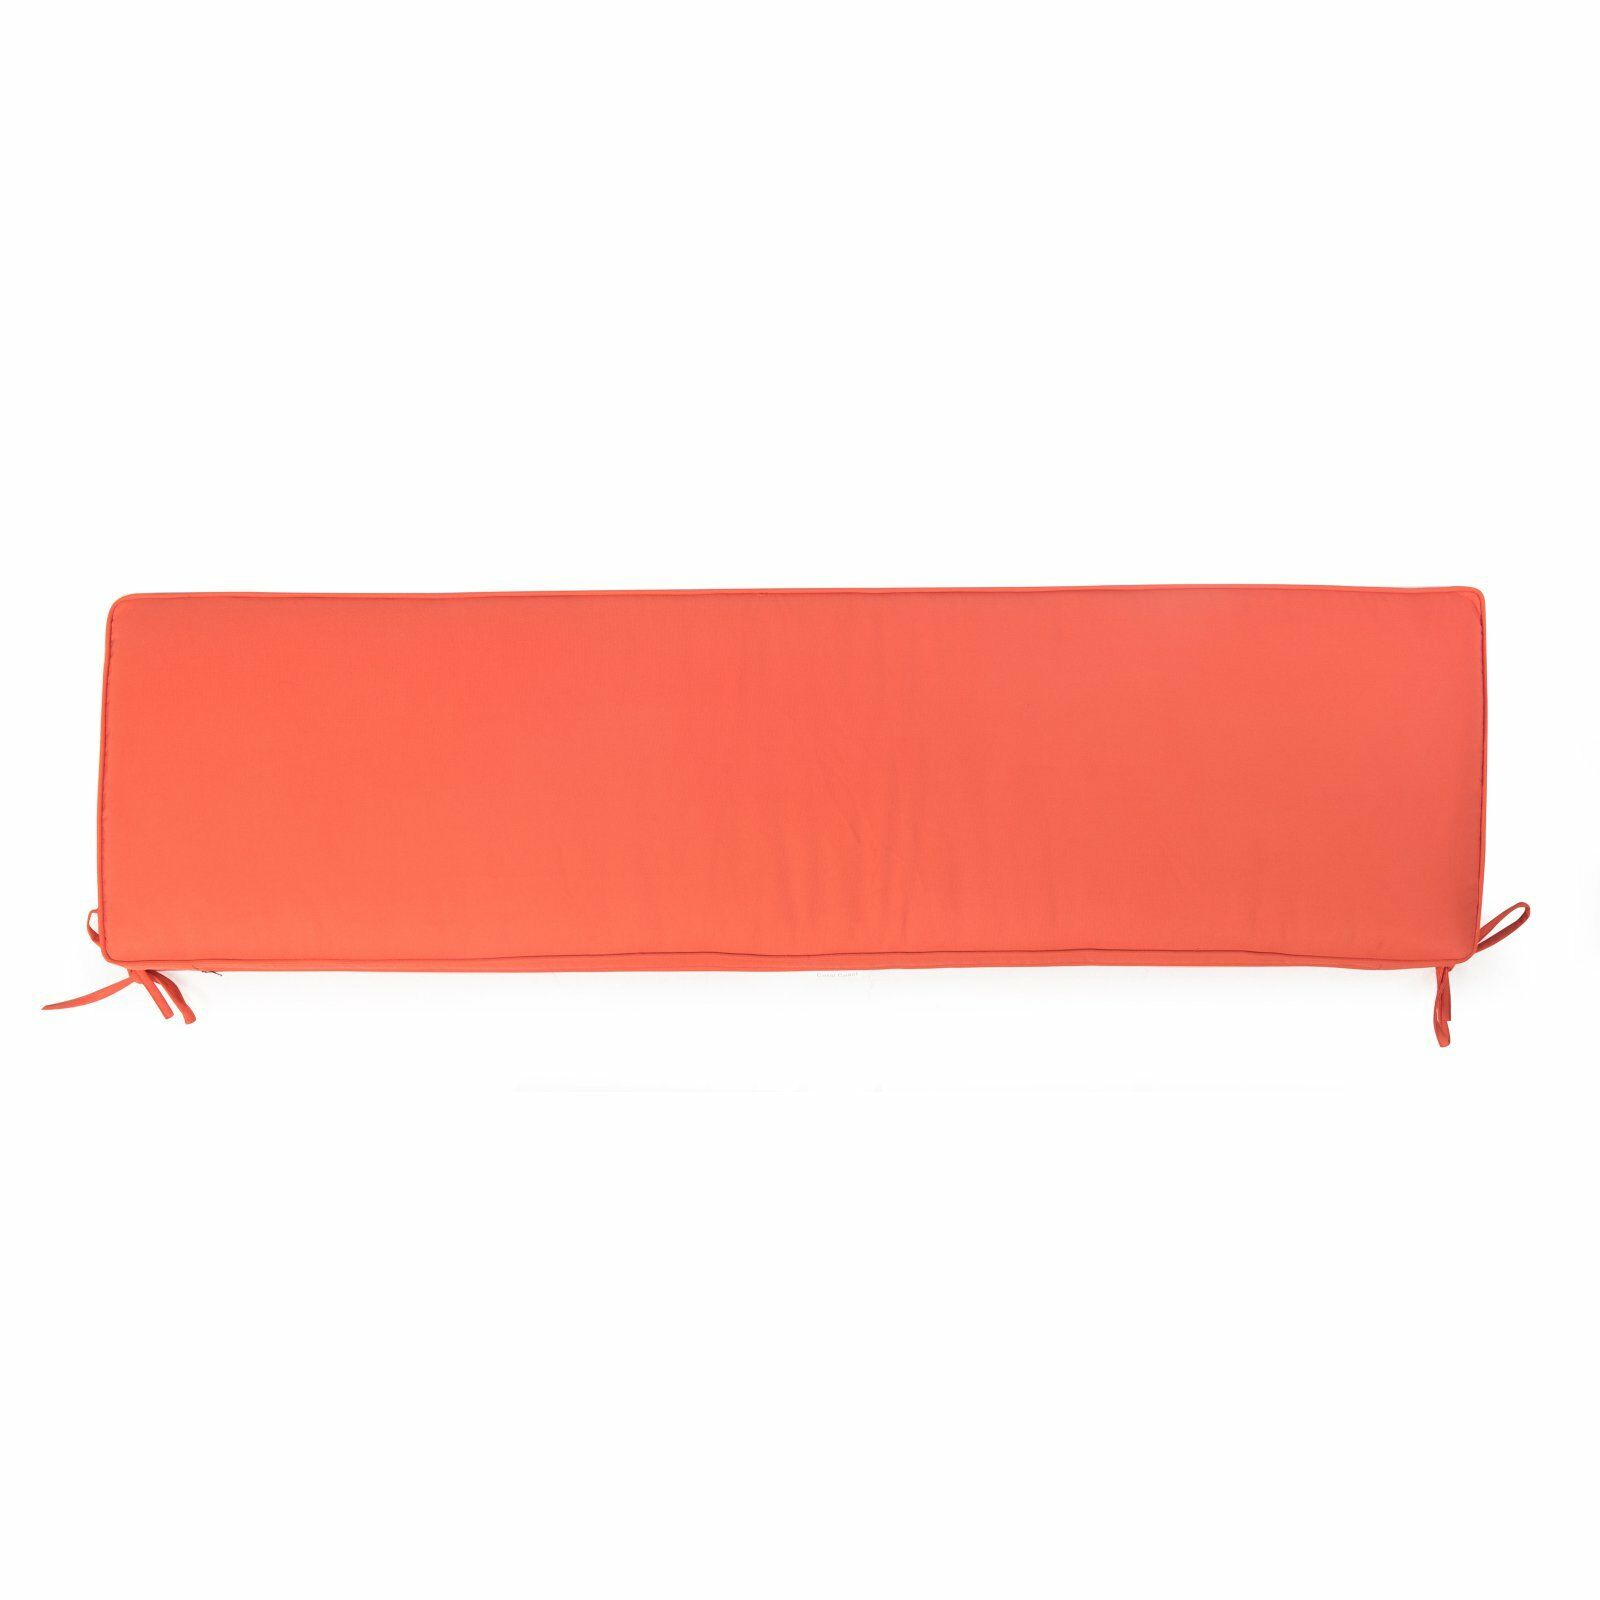 Solid Coral Outdoor Bench Cushion Swing 53  x 14 14 14  Seasonal Replacement 4e3e2f